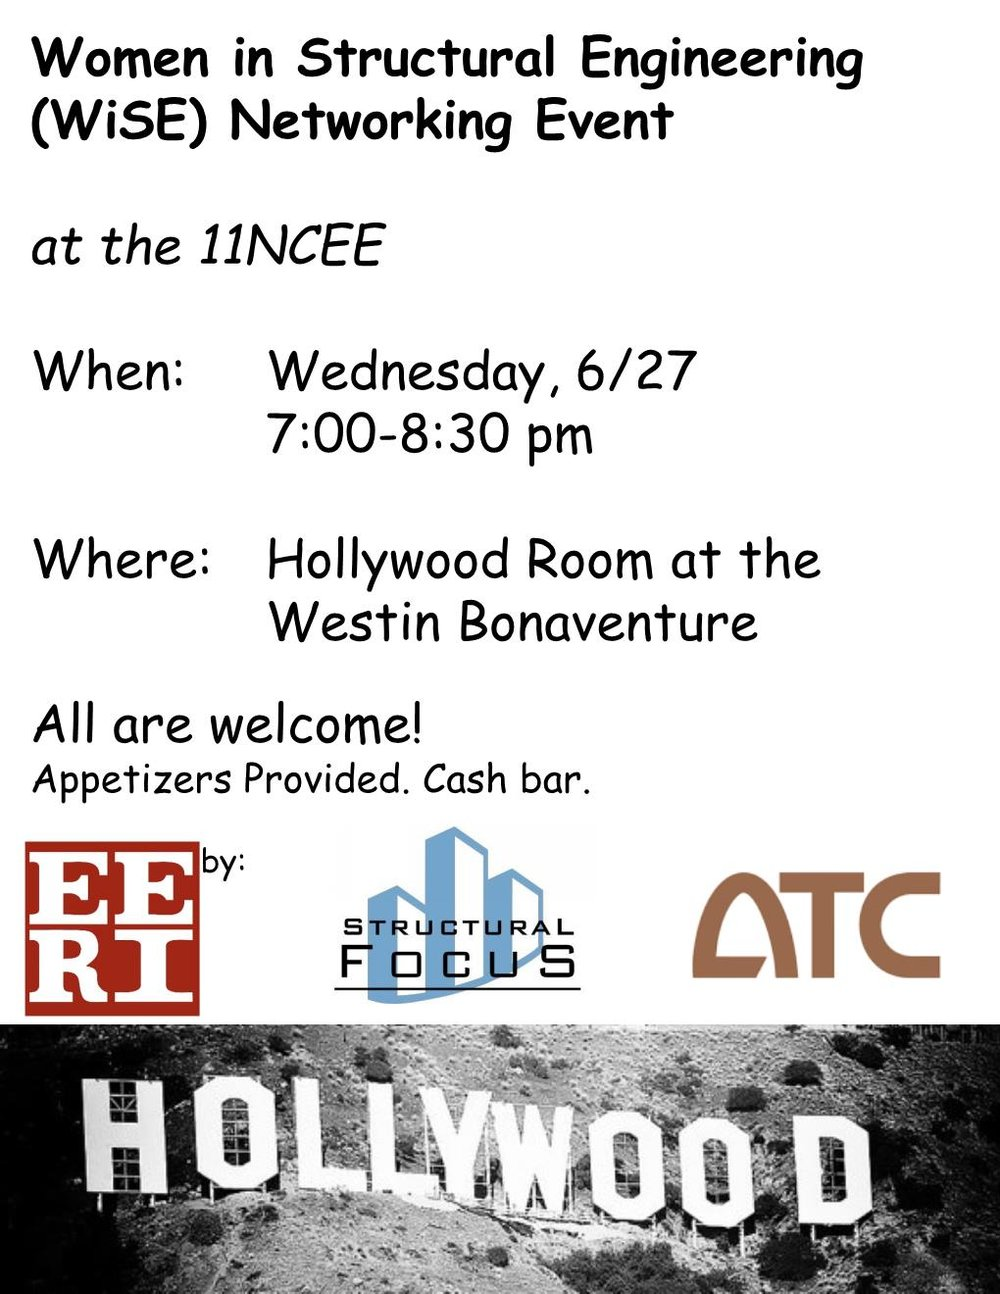 WiSE at 11NCEE! - Join WiSE in Los Angeles on Wednesday, June 27 in the Hollywood Room at the Westin Bonaventure from 7-8:30 pm.Food will be provided courtesy of our sponsors. Cash bar. All are welcome!